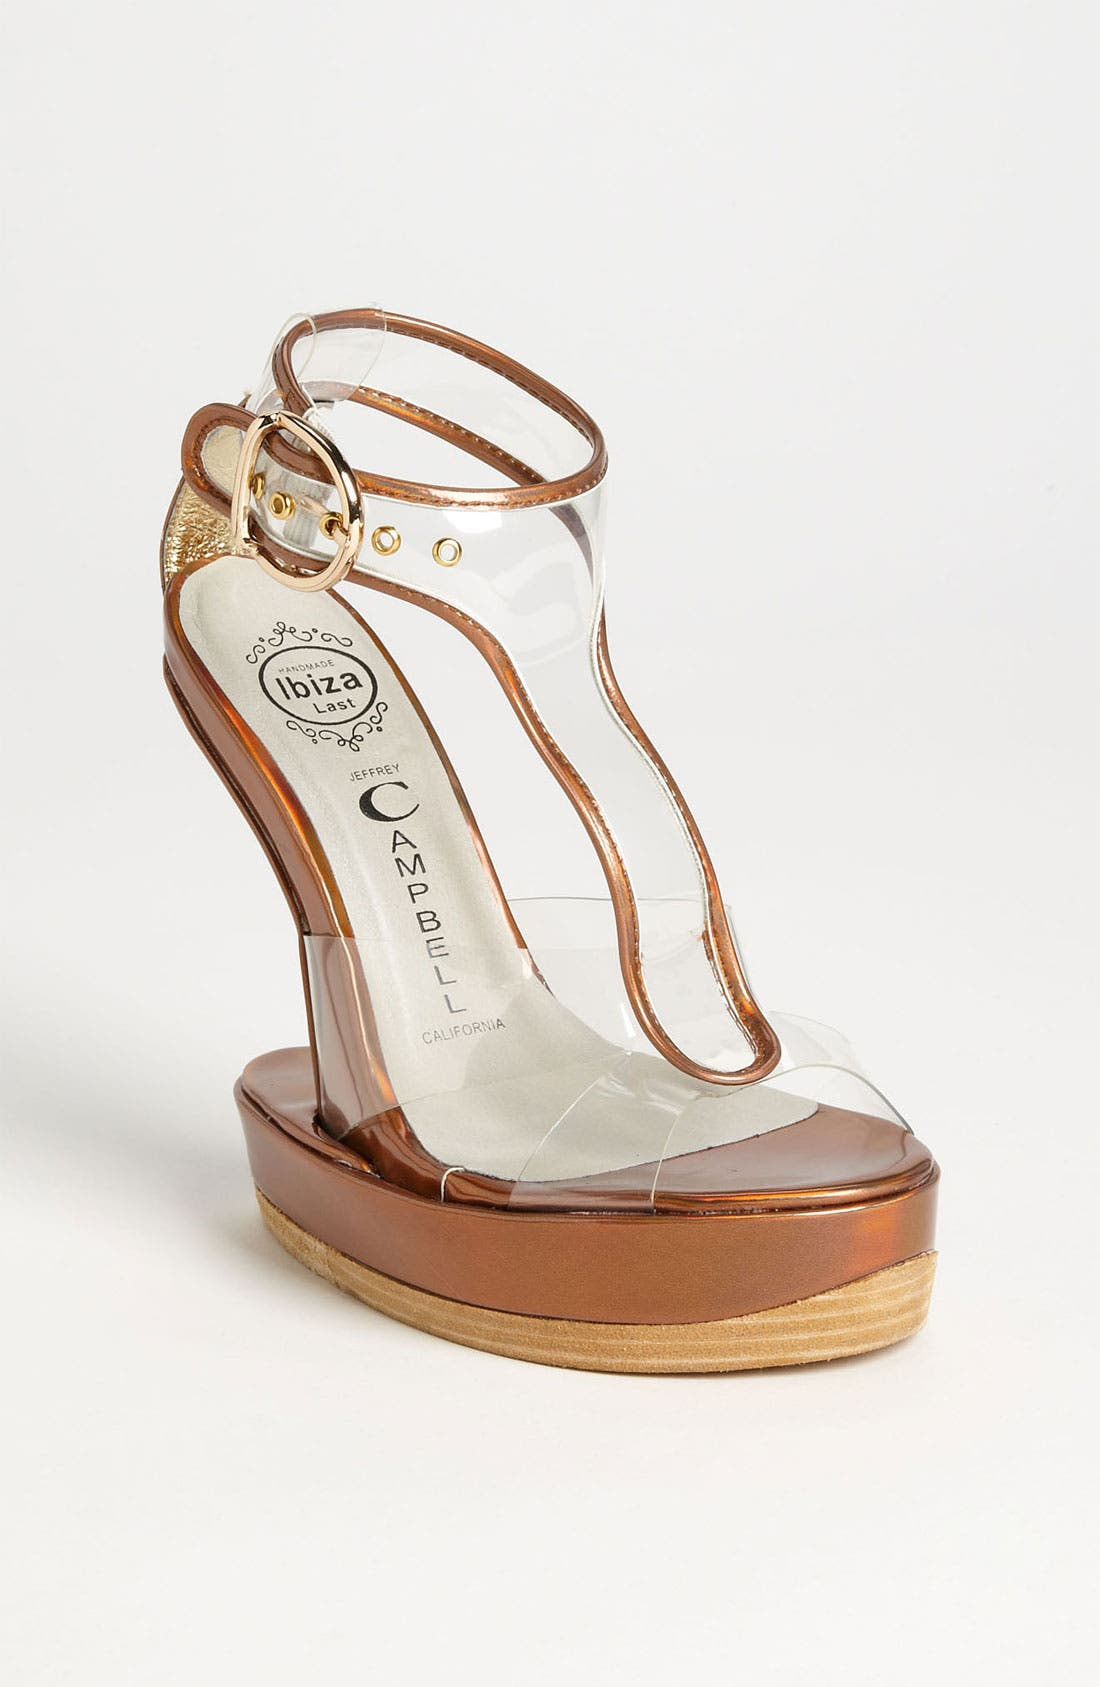 Main Image - Jeffrey Campbell 'Incline' Sandal